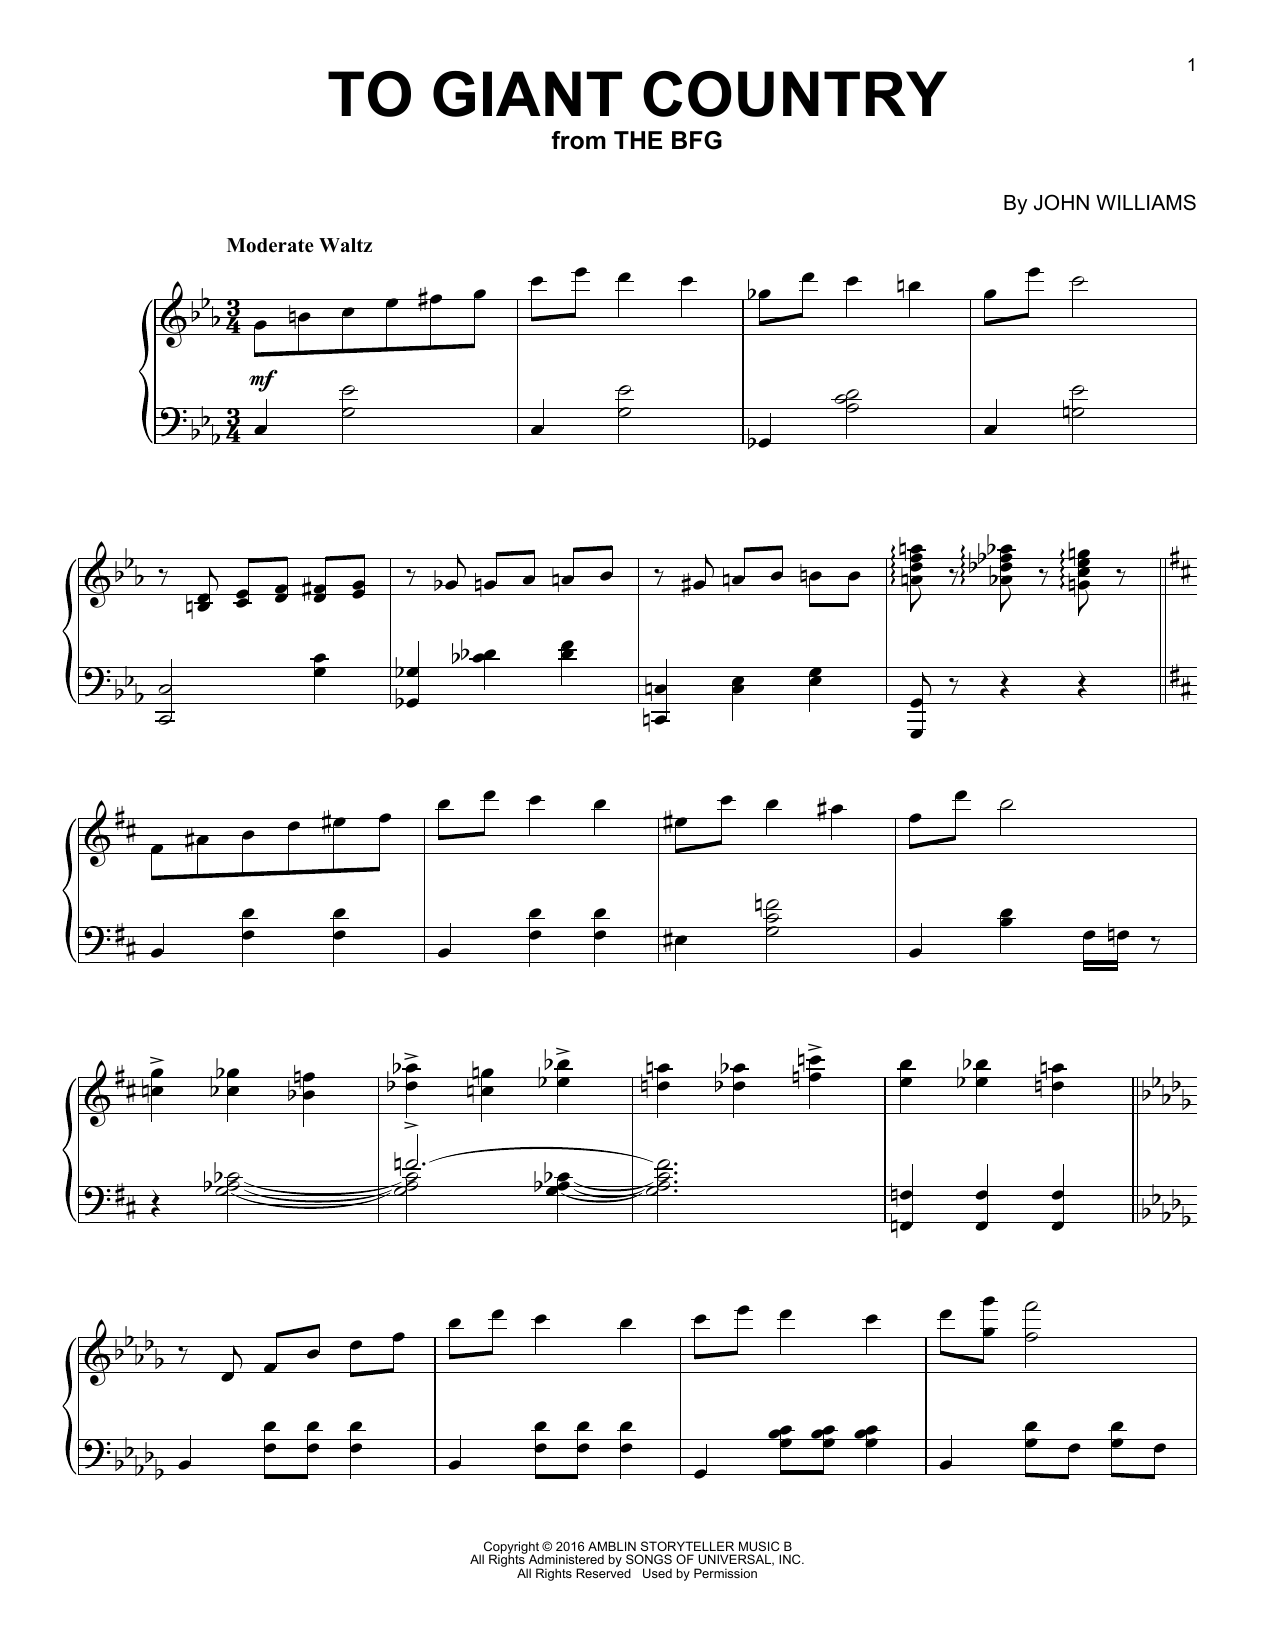 To Giant Country Sheet Music